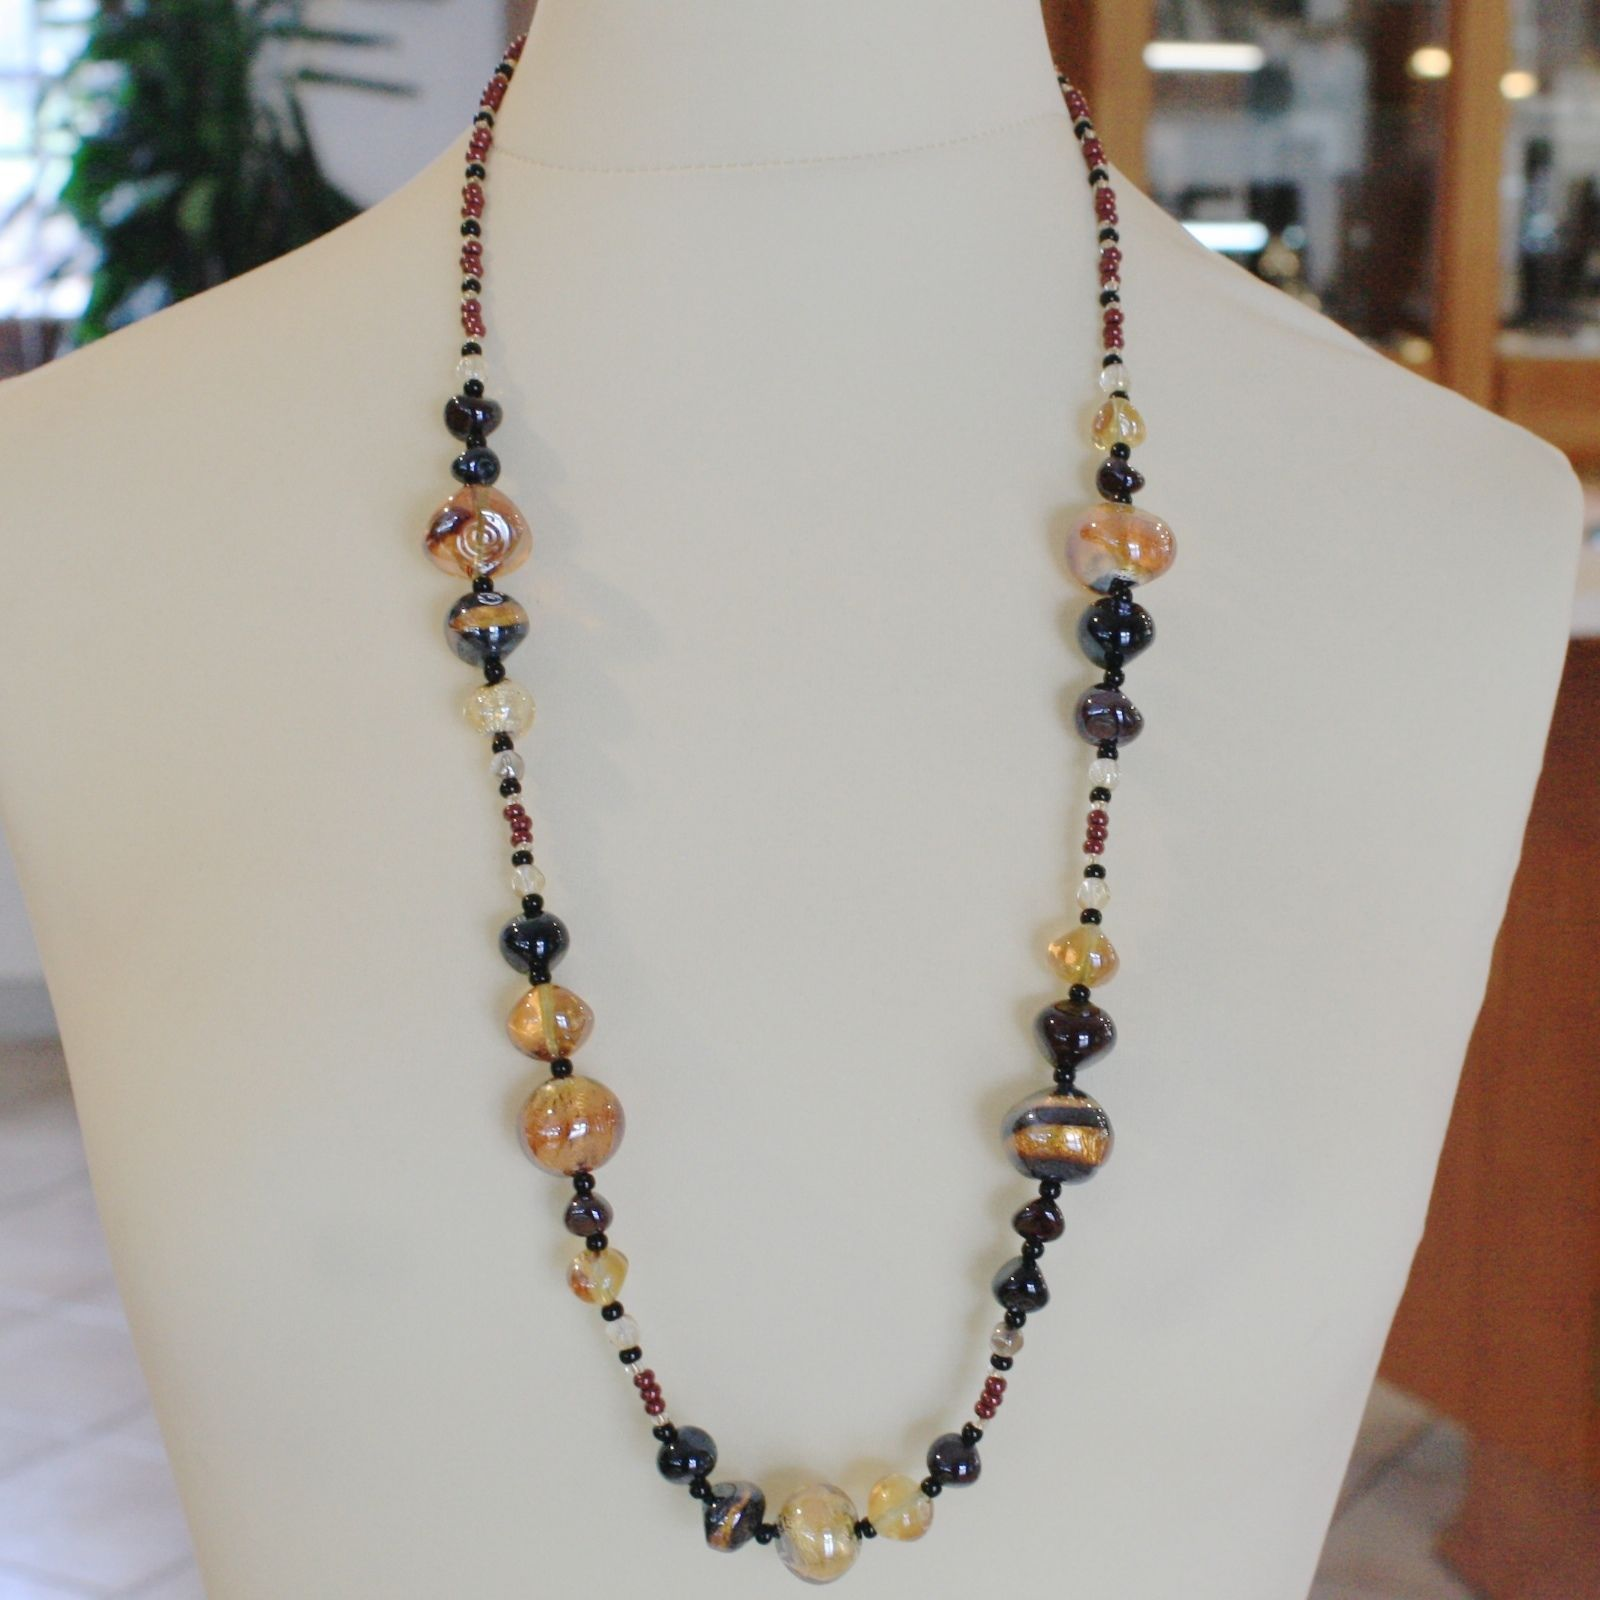 ANTICA MURRINA VENEZIA LONG NECKLACE MULTICOLOR, BIG AMBER BLACK NUGGETS